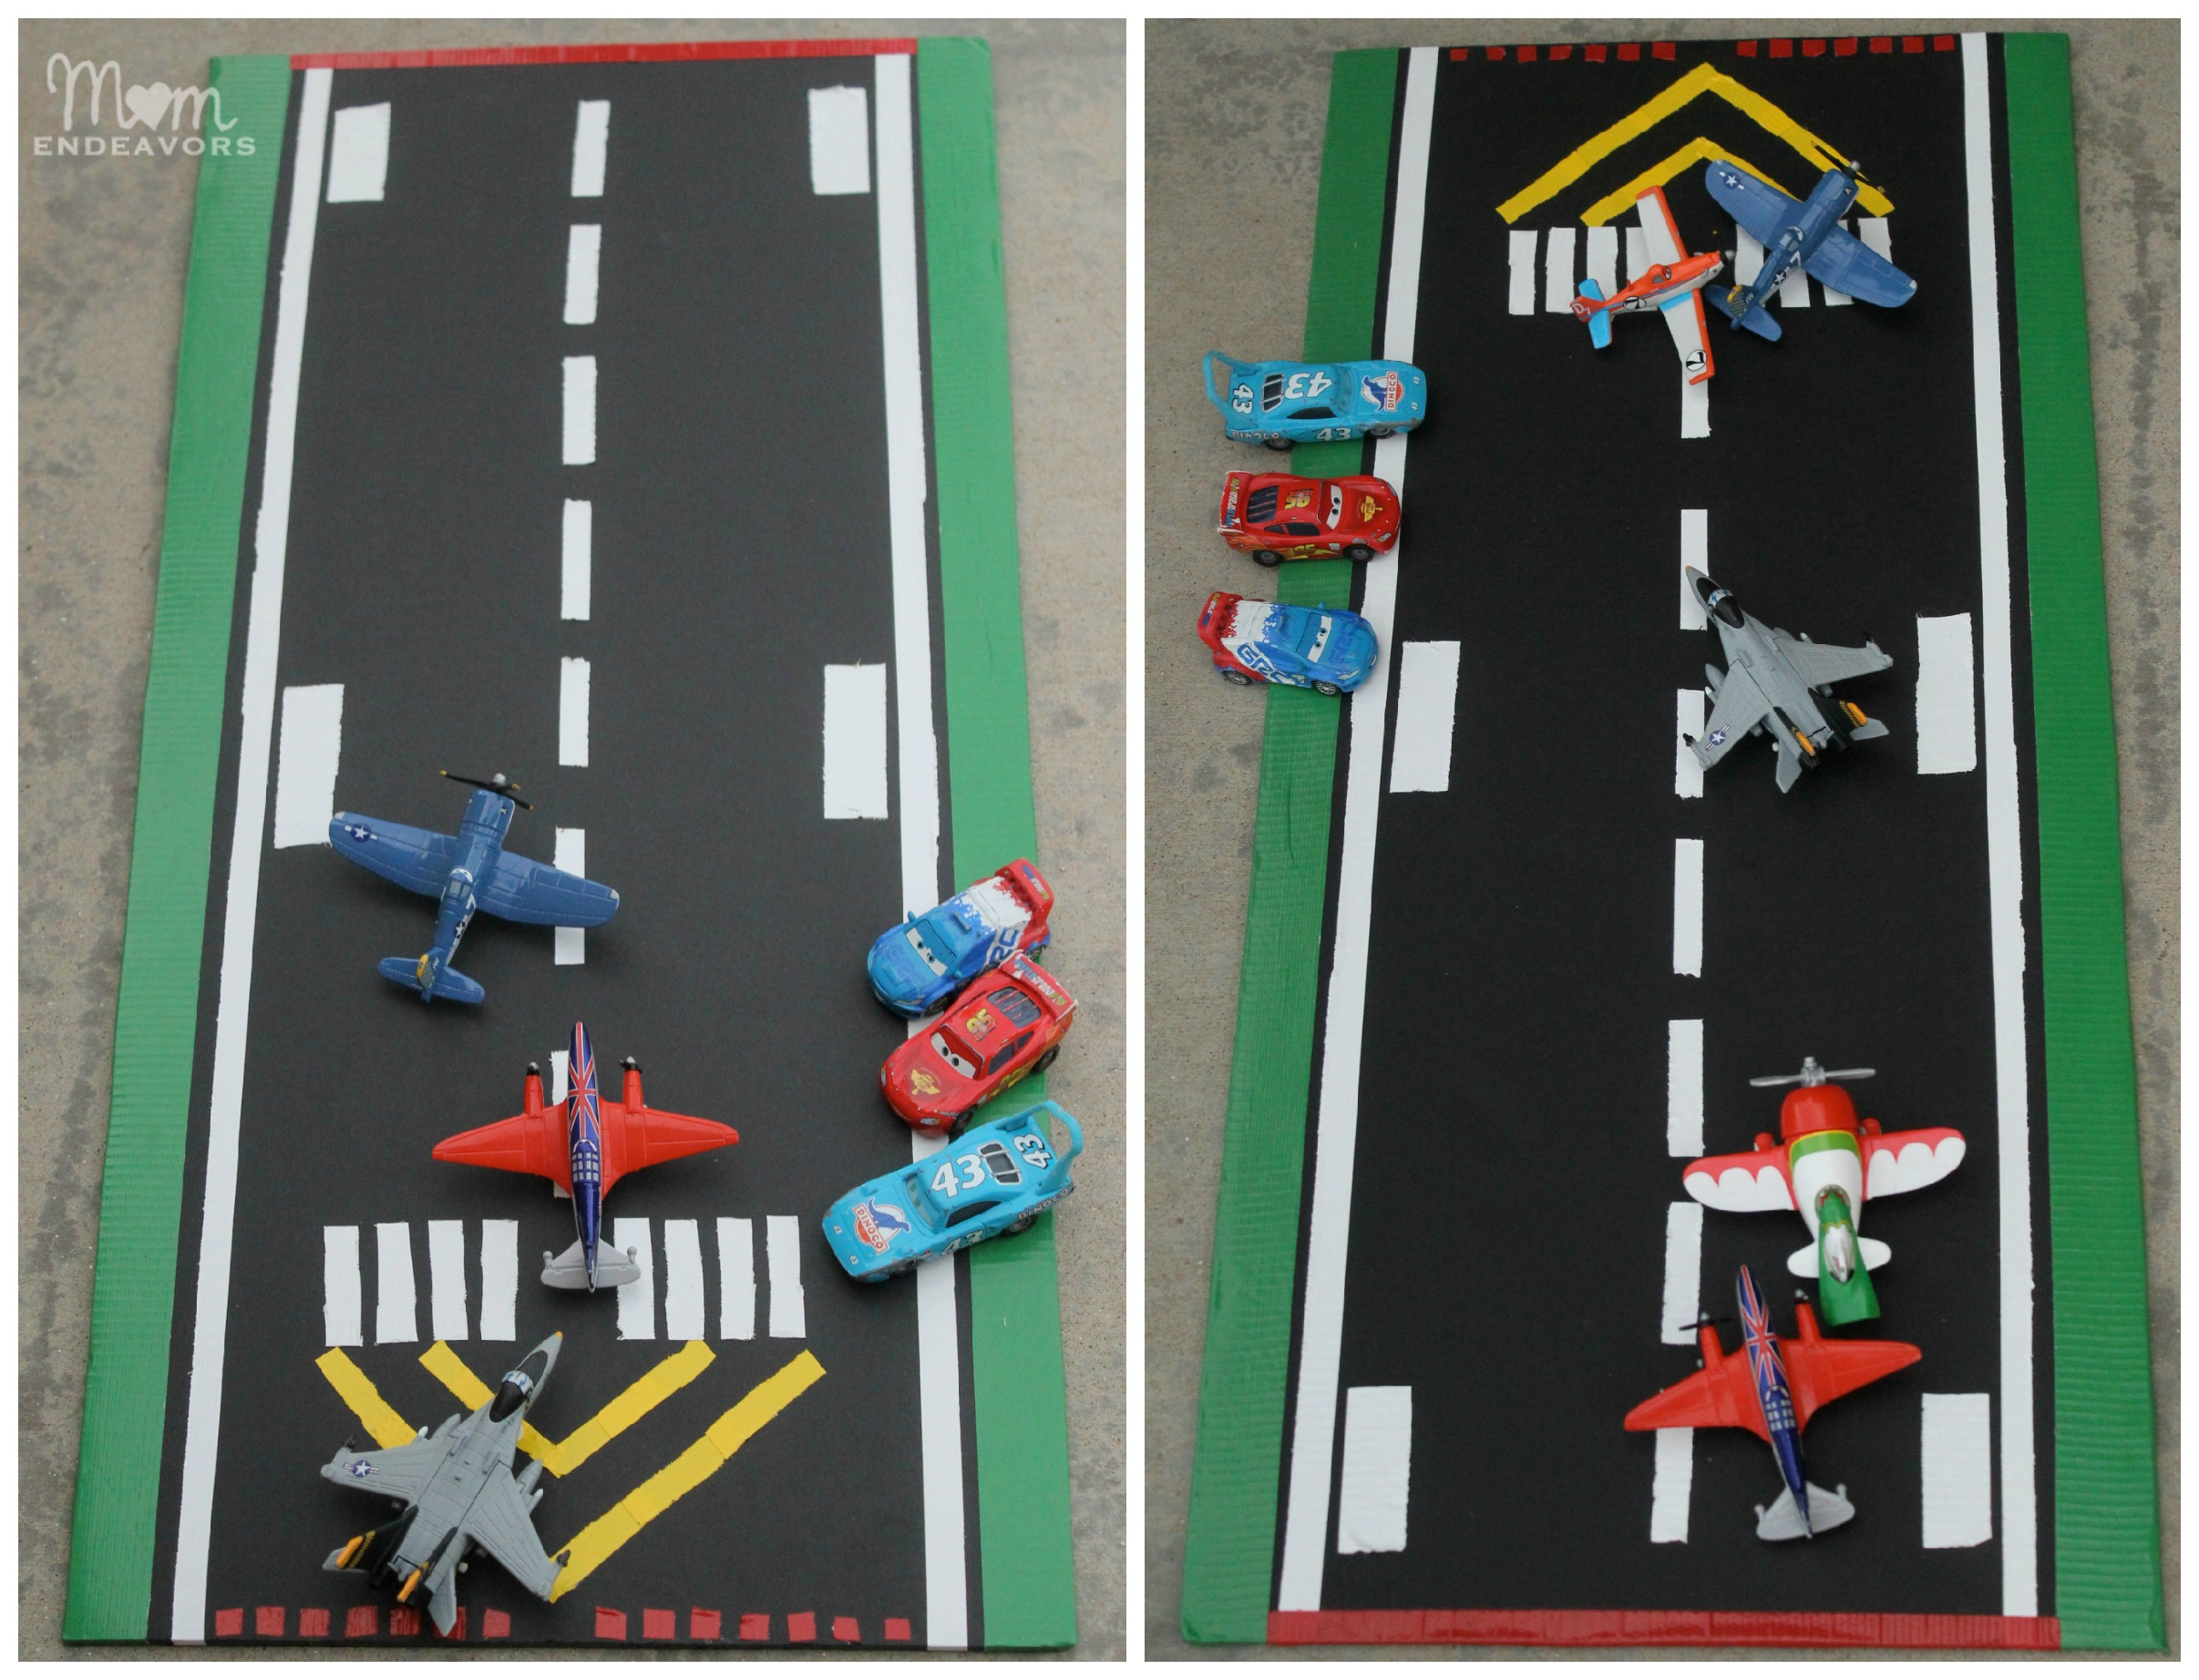 boys flying toys with Disney Planes Toys Diy Play Runway Worldofcars on Dinosaur Toys For Boys further Disney Planes Toys Diy Play Runway Worldofcars besides Flight 20clipart 20toy 20plane together with Baskets additionally Children Playing Outside 513293935.